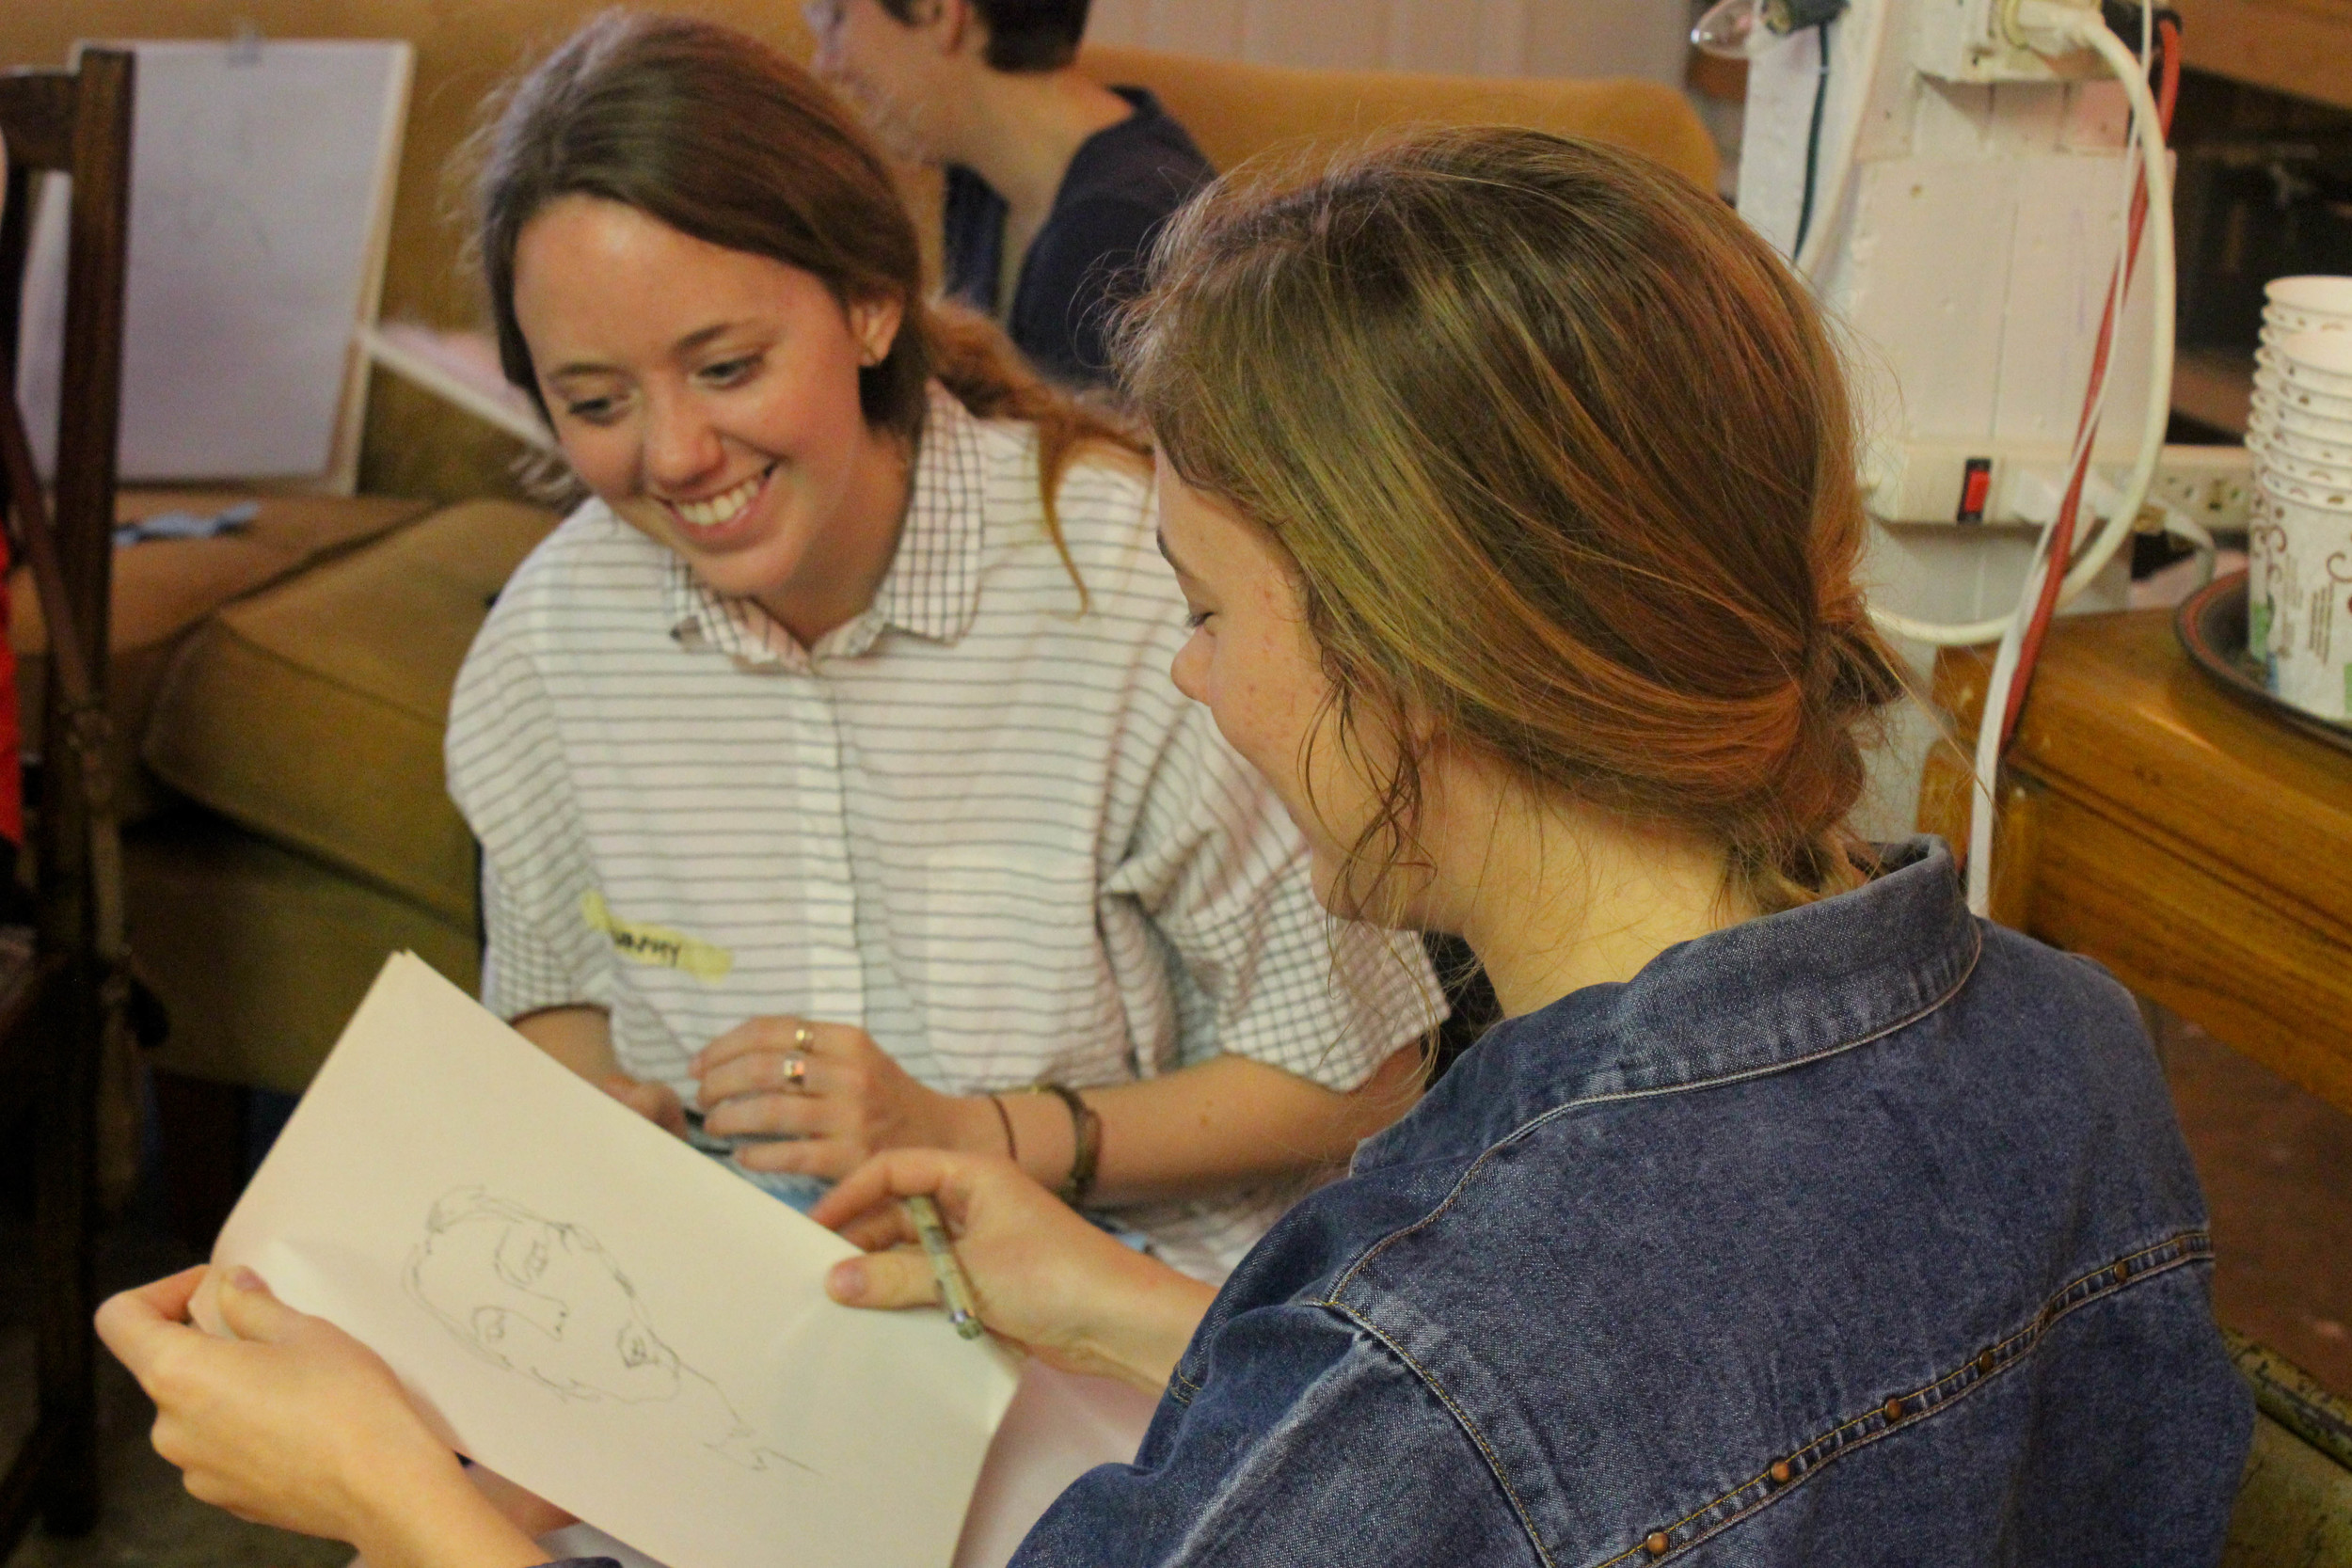 Murphy Anne Carter (left) and Bronwyn Walls (right) look at their first figure drawings.